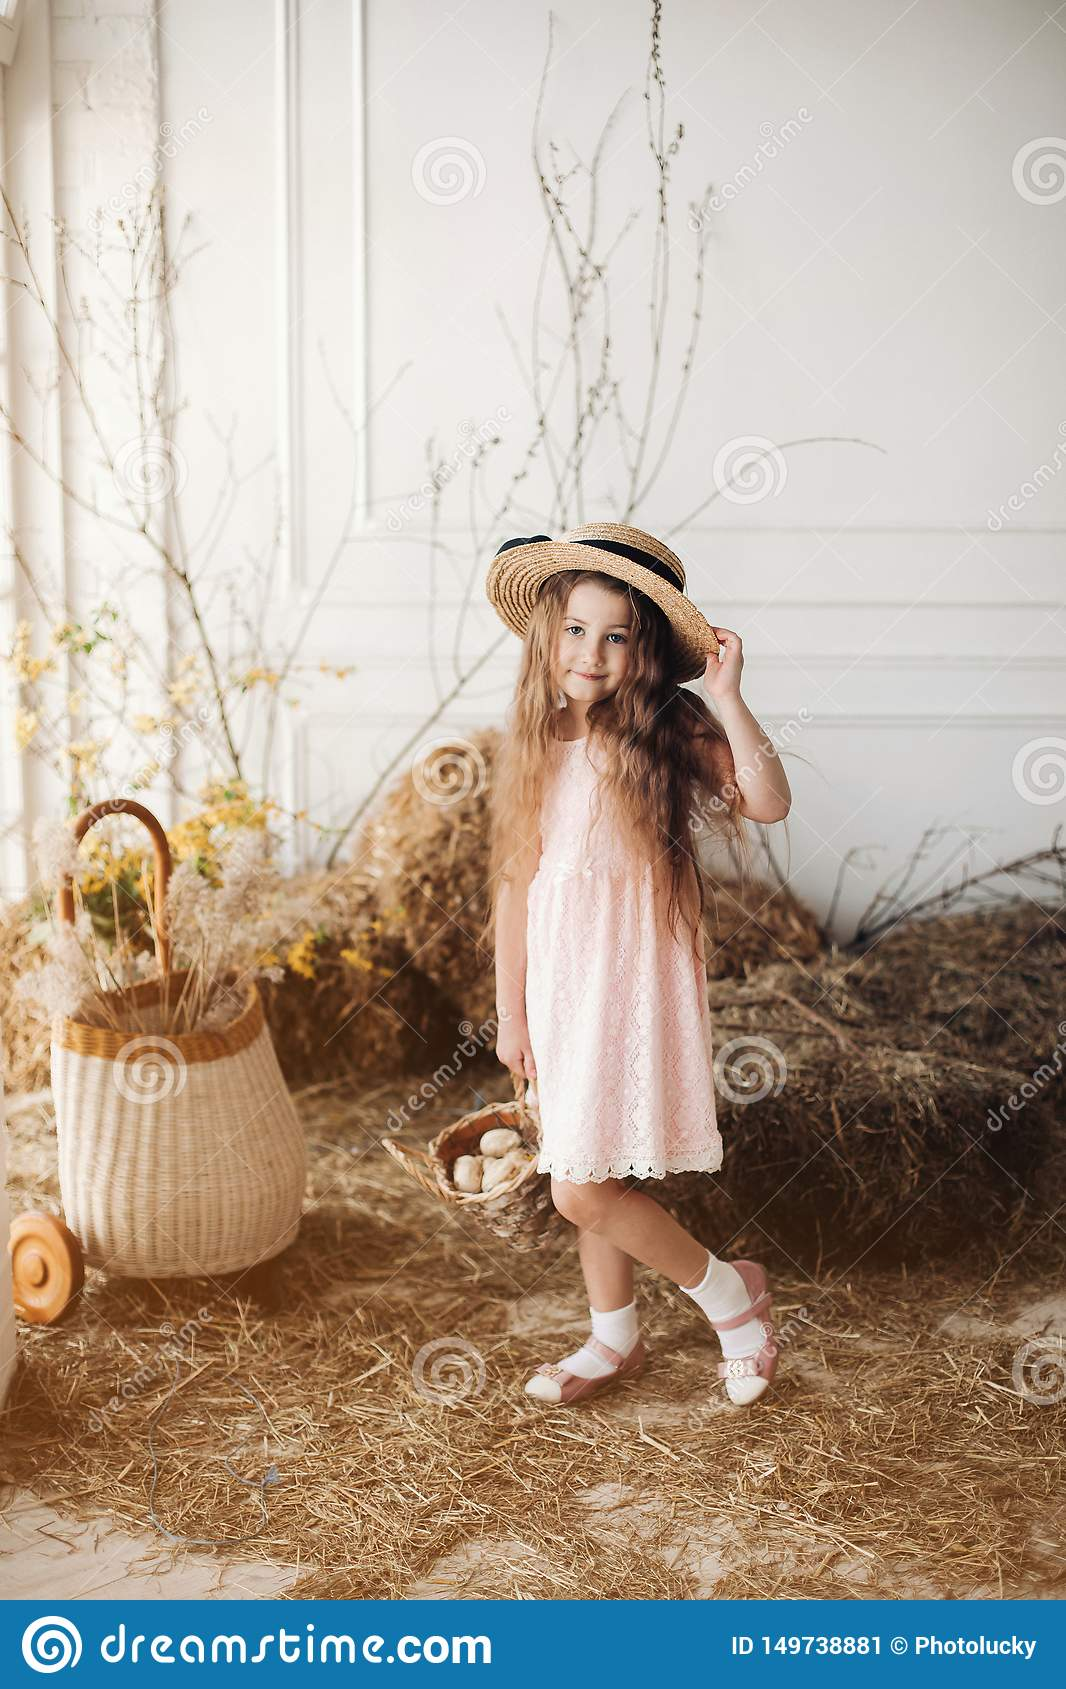 Girl in dress and hay hat keeping basket with little chick